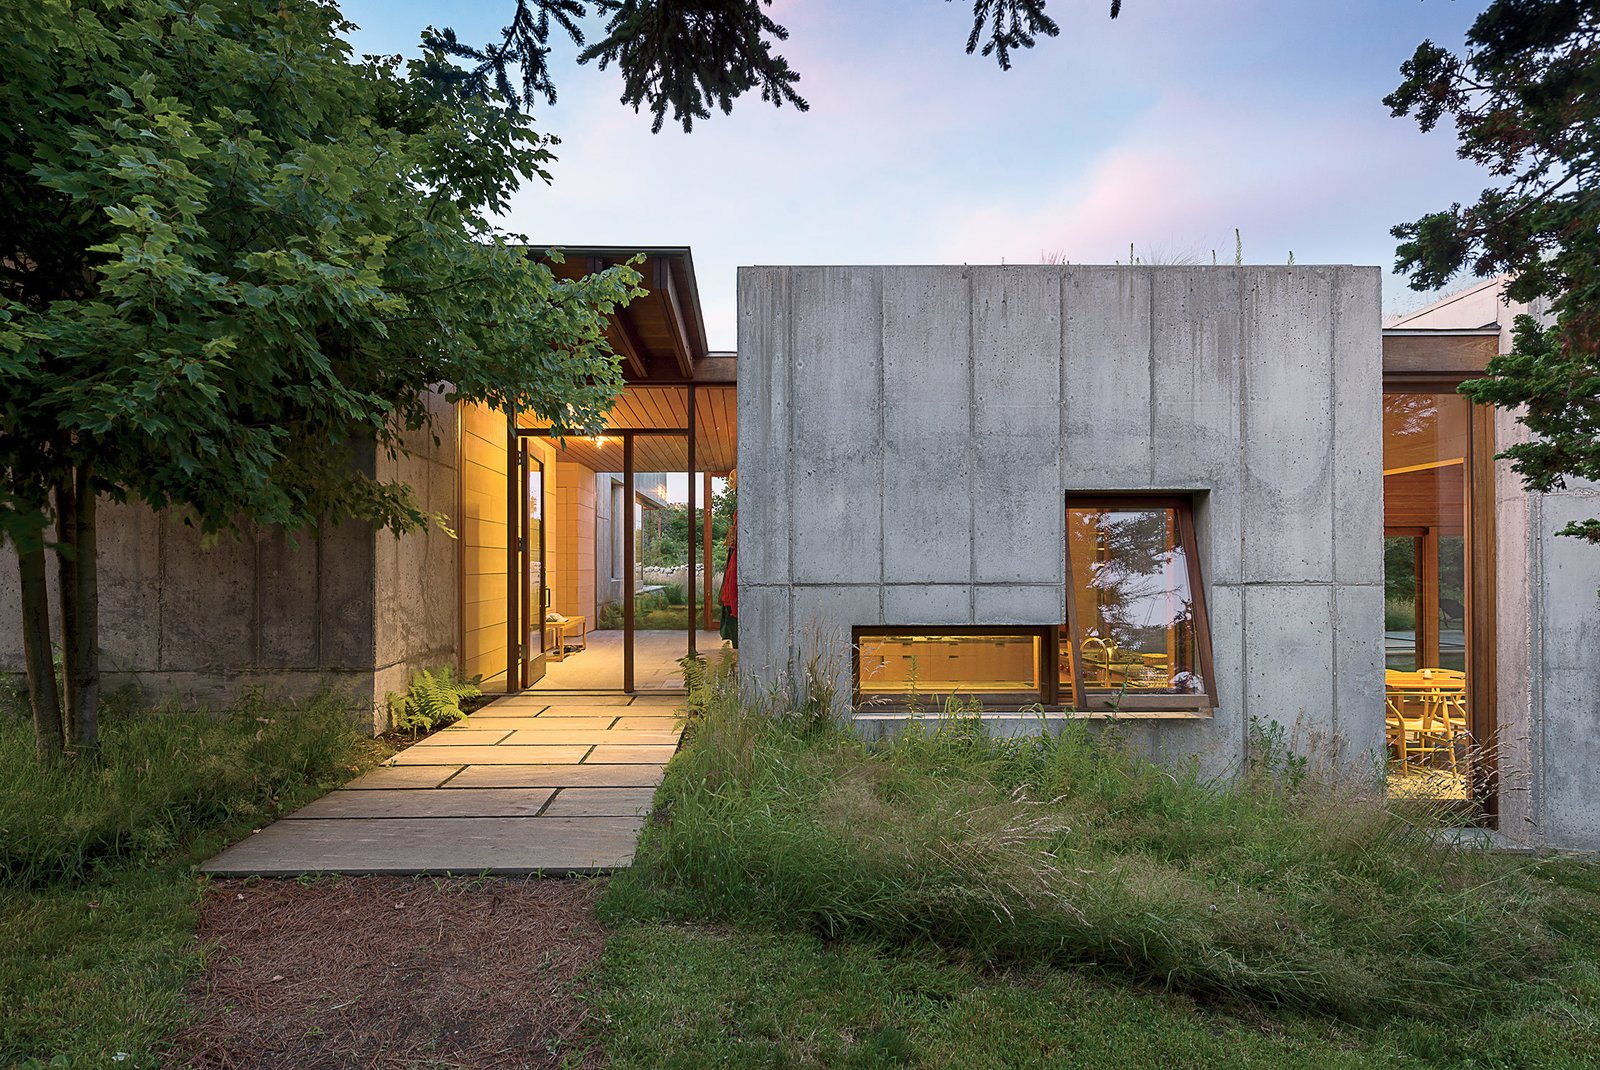 East House front yard with concrete pavers creating an entrance walkway